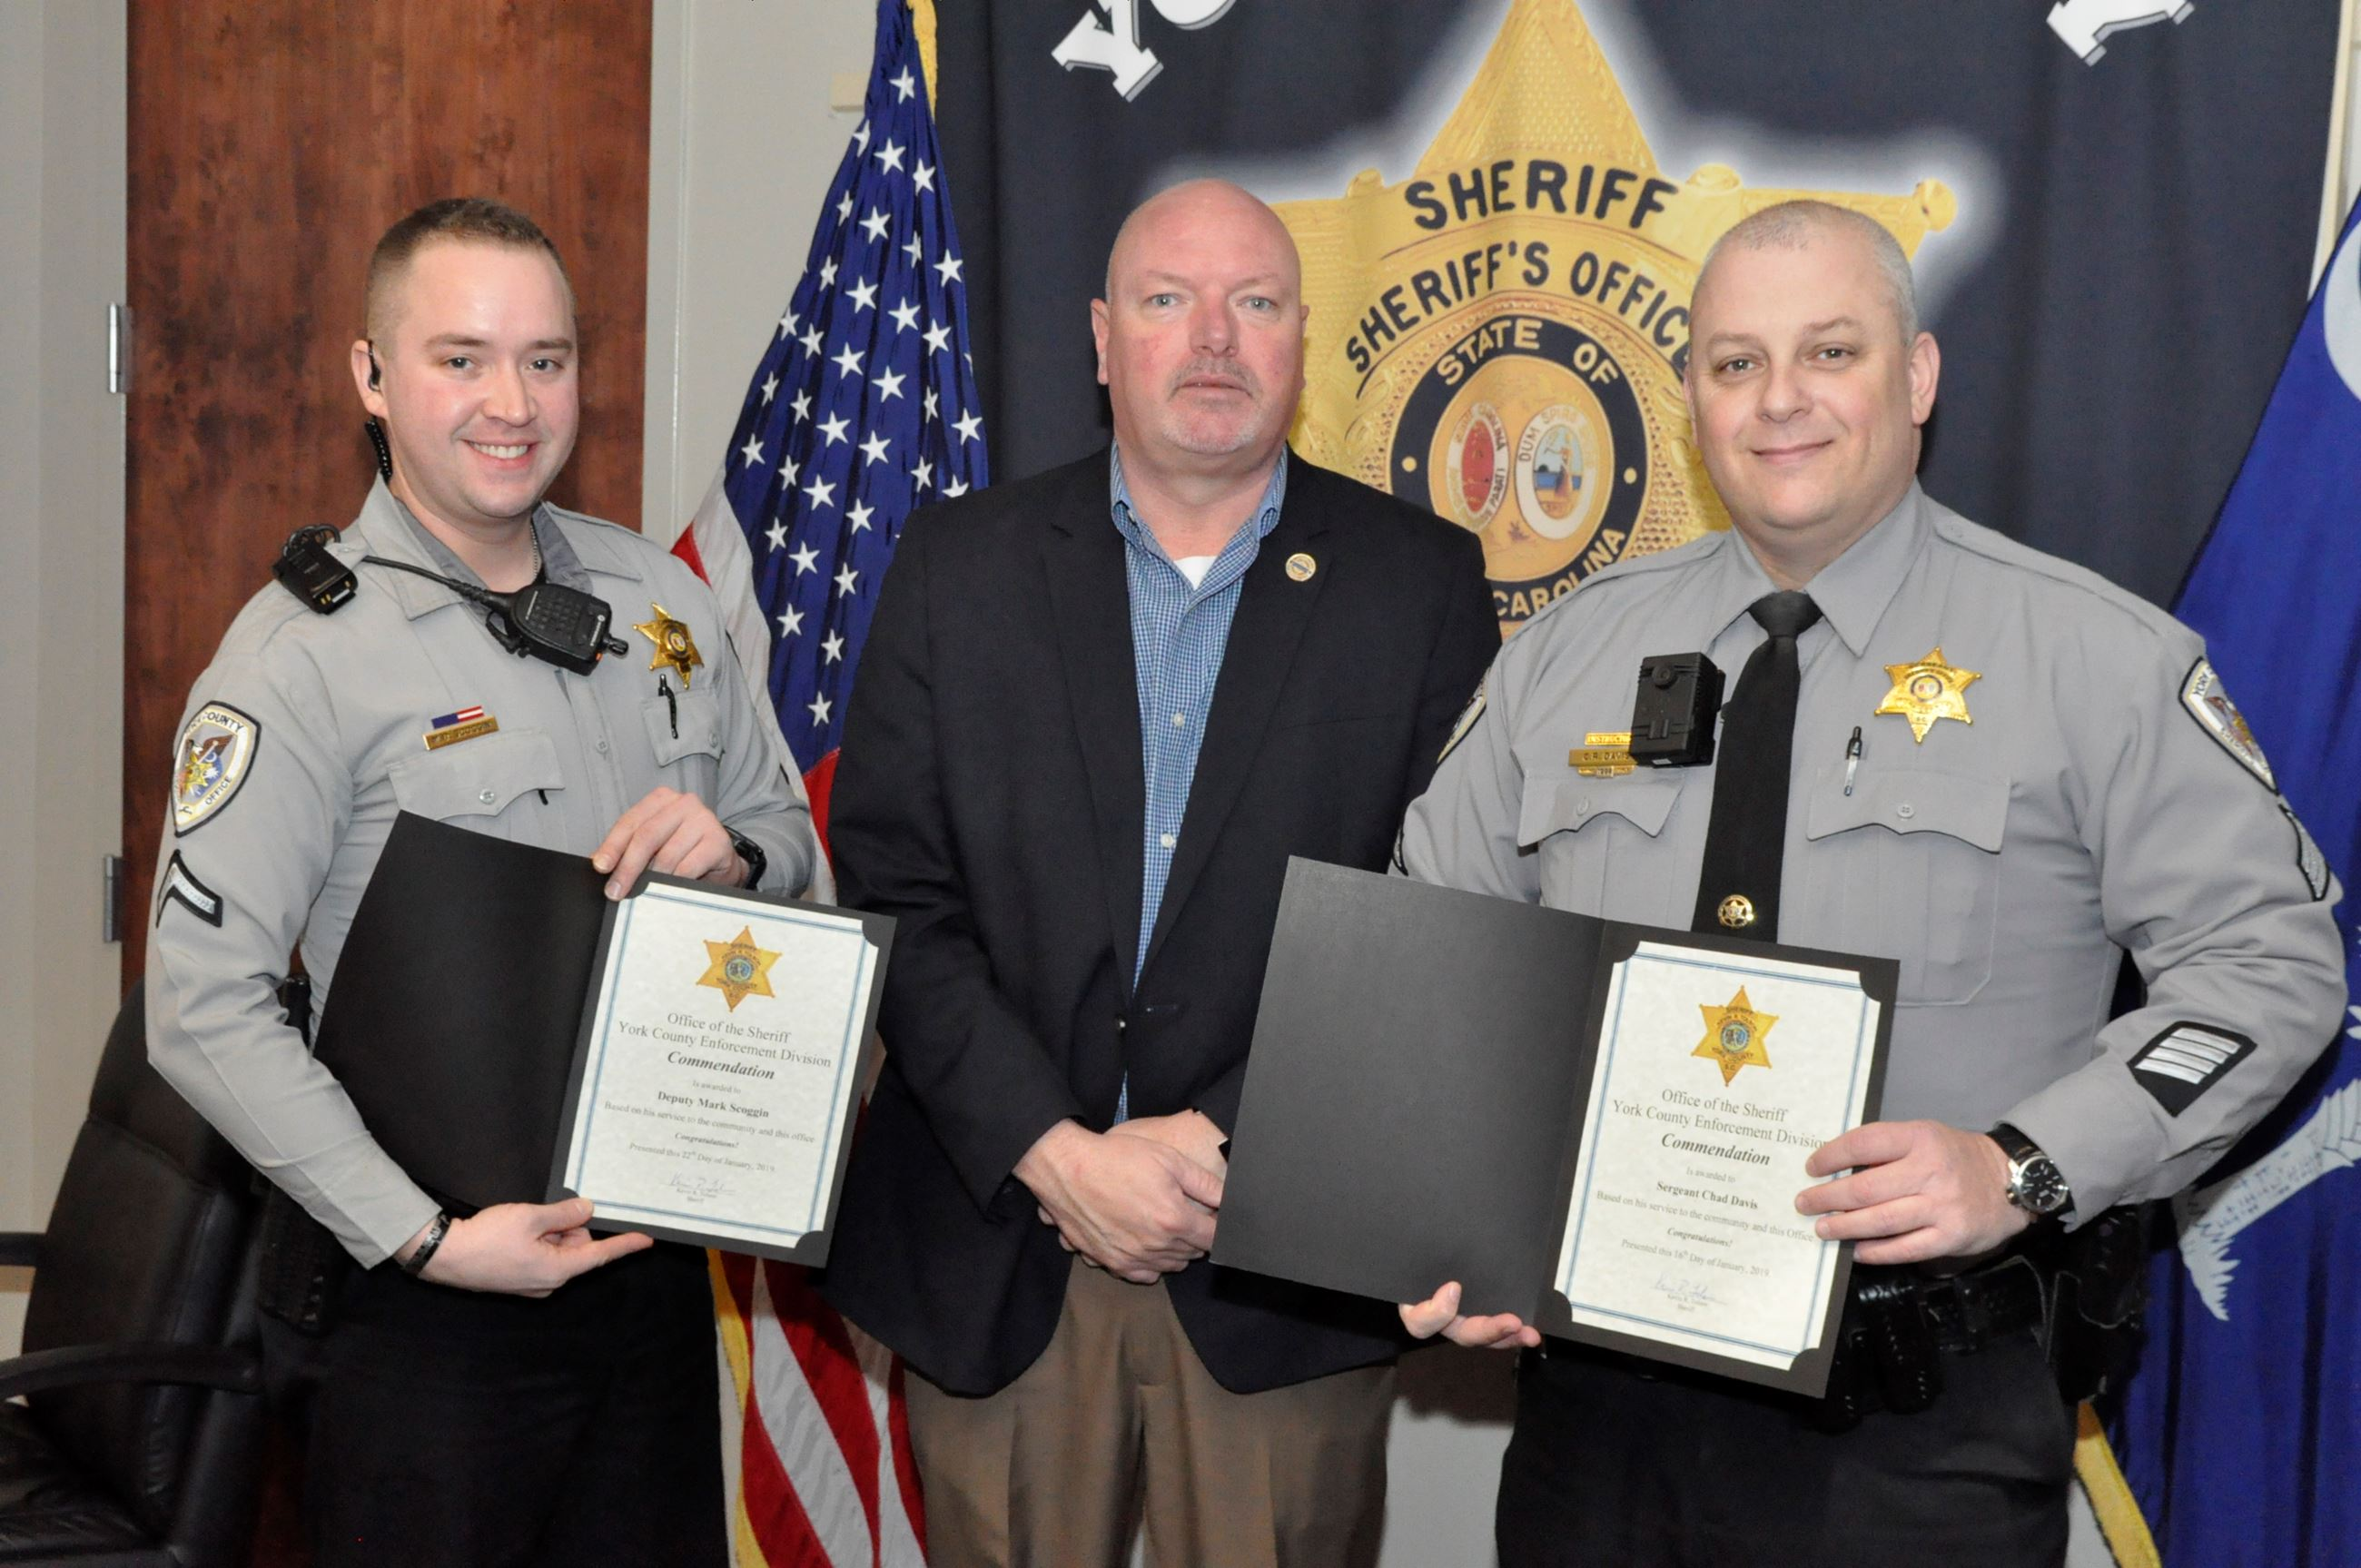 Photo of Sgt. Chad Davis, Sheriff Tolson and Dep. Oliver